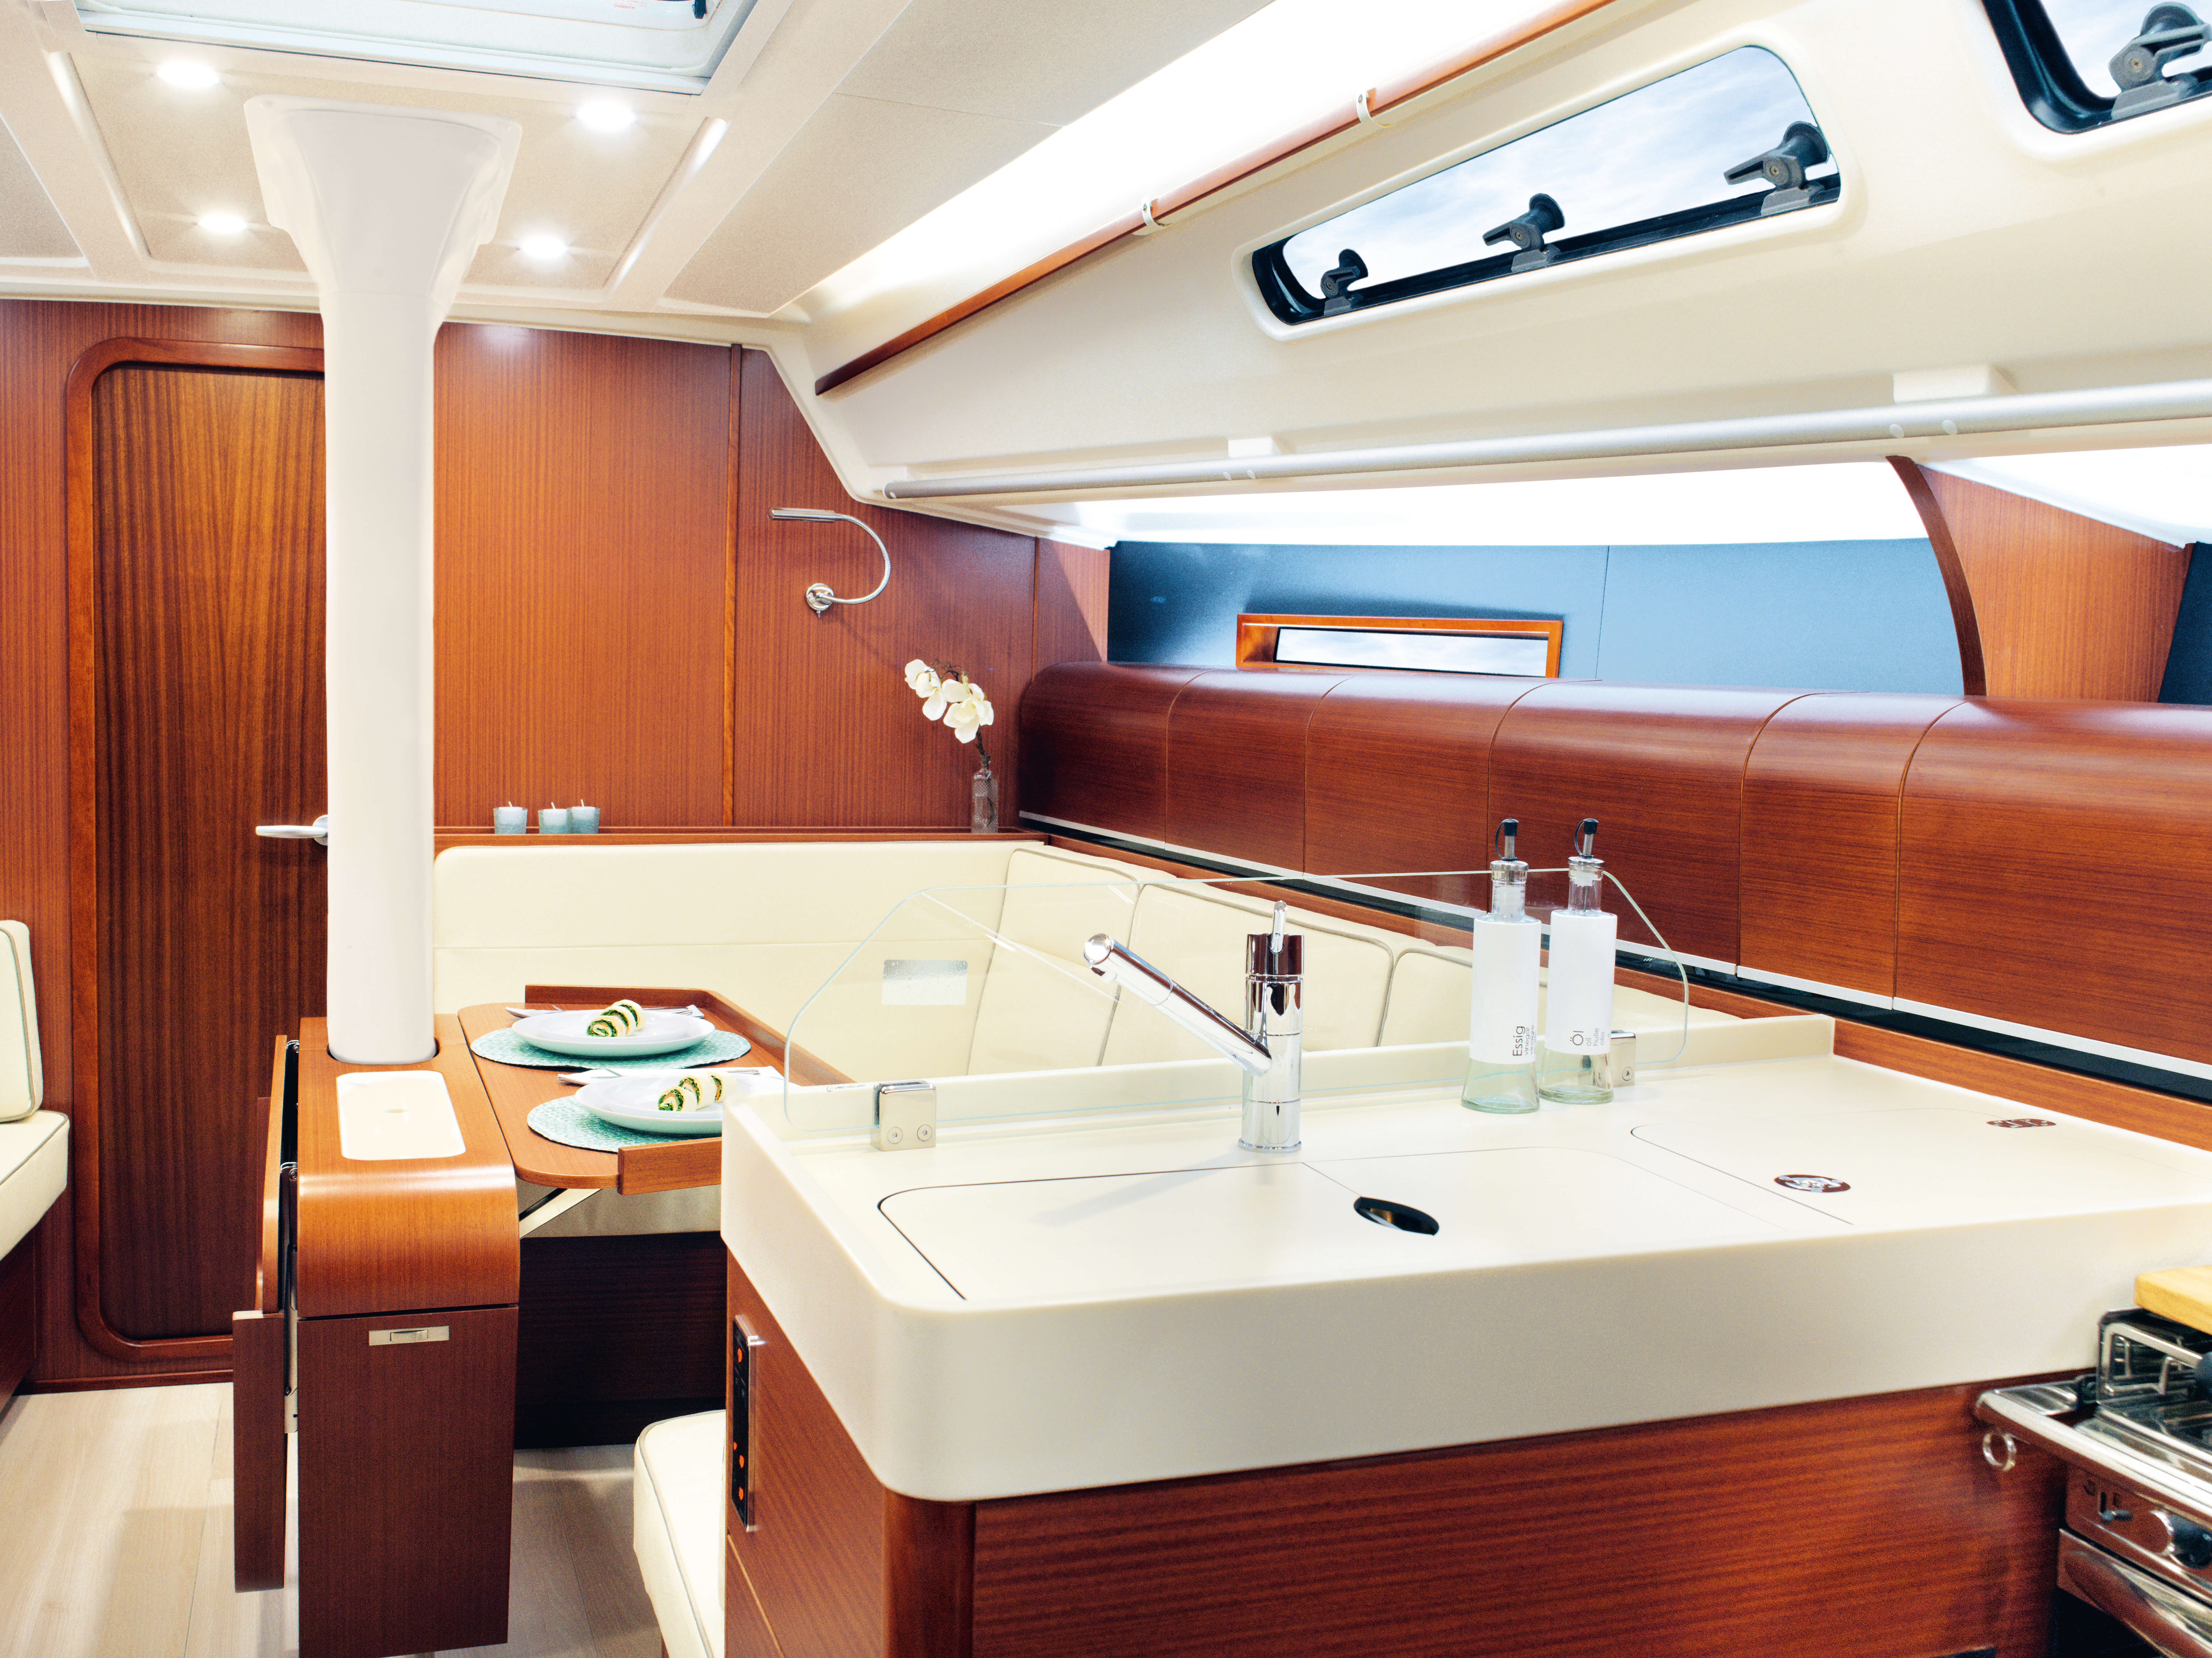 Dehler 42 Interior view pantry | sink cover, tap, foldable table | Dehler